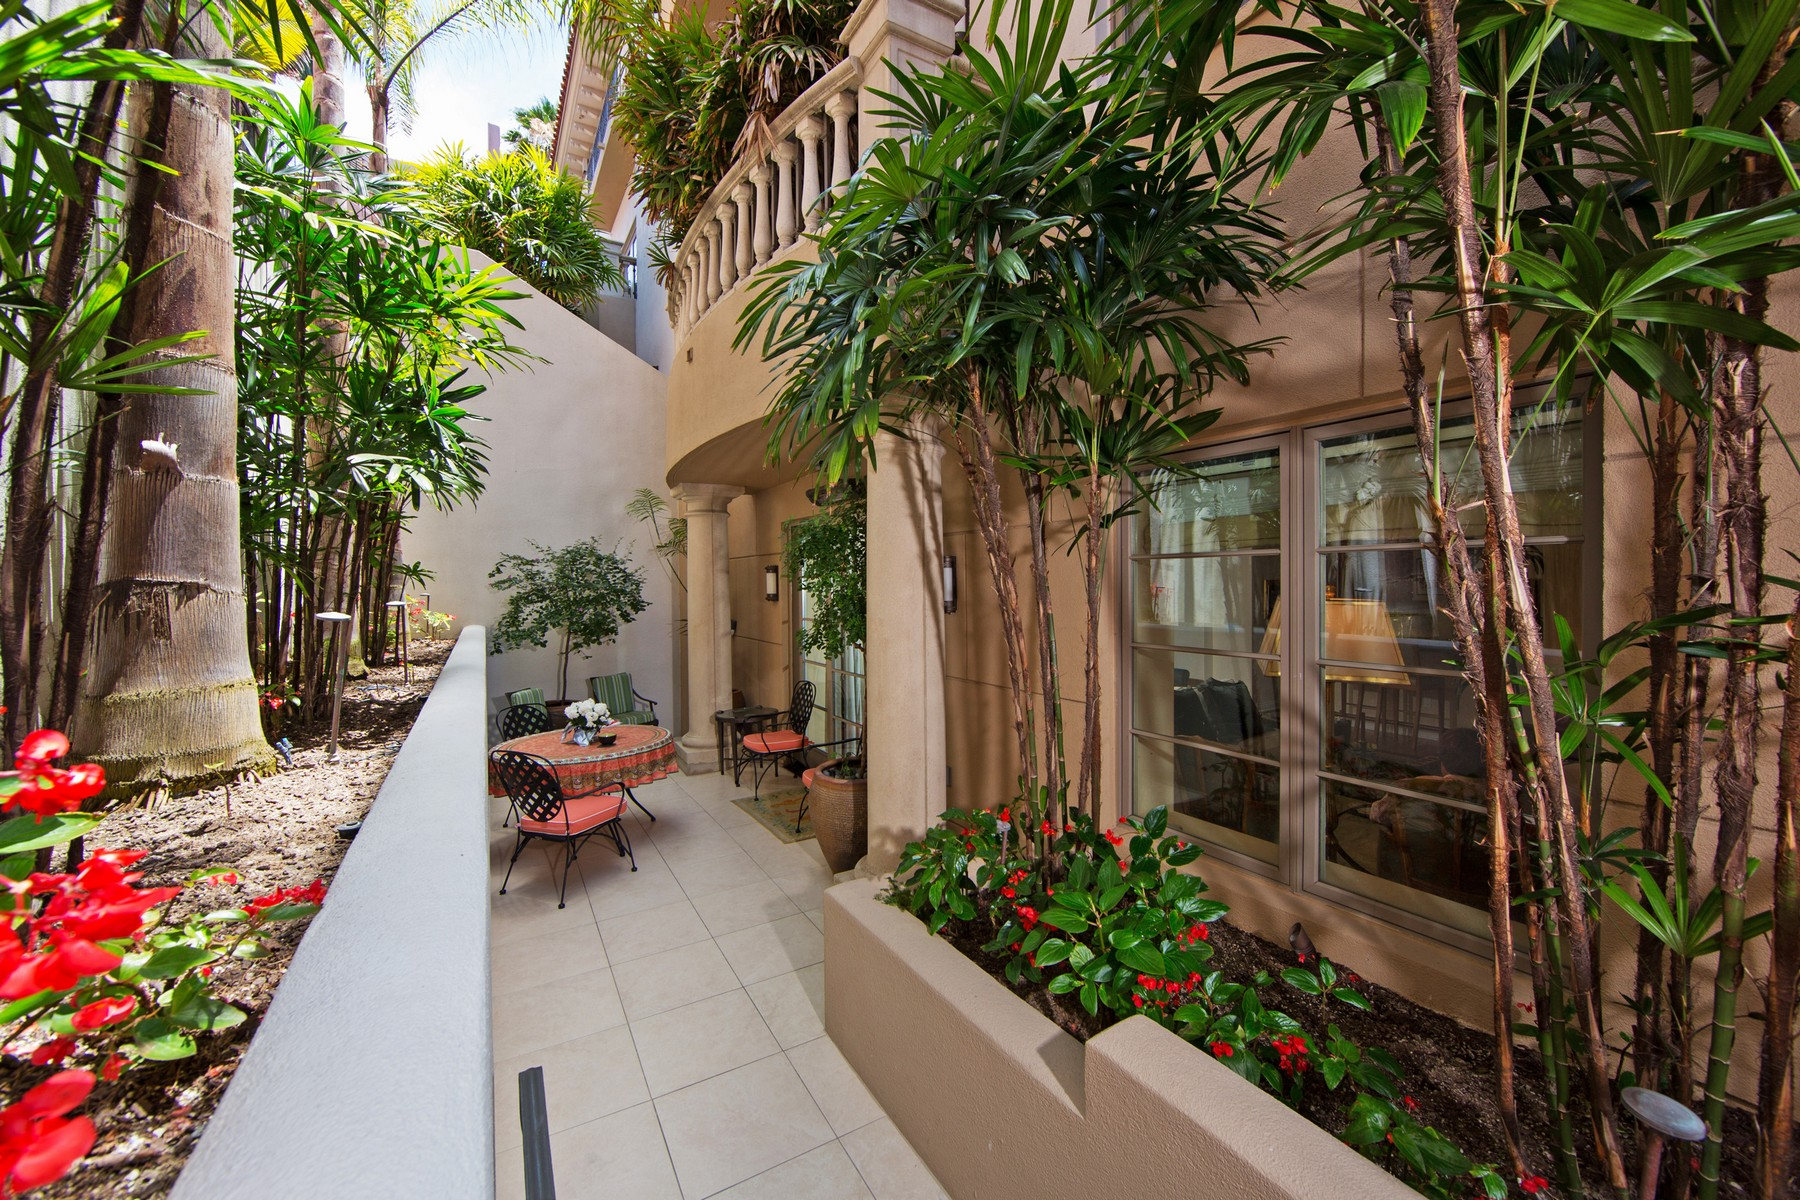 Additional photo for property listing at 464 Prospect Street, Unit 403  La Jolla, California 92037 Estados Unidos